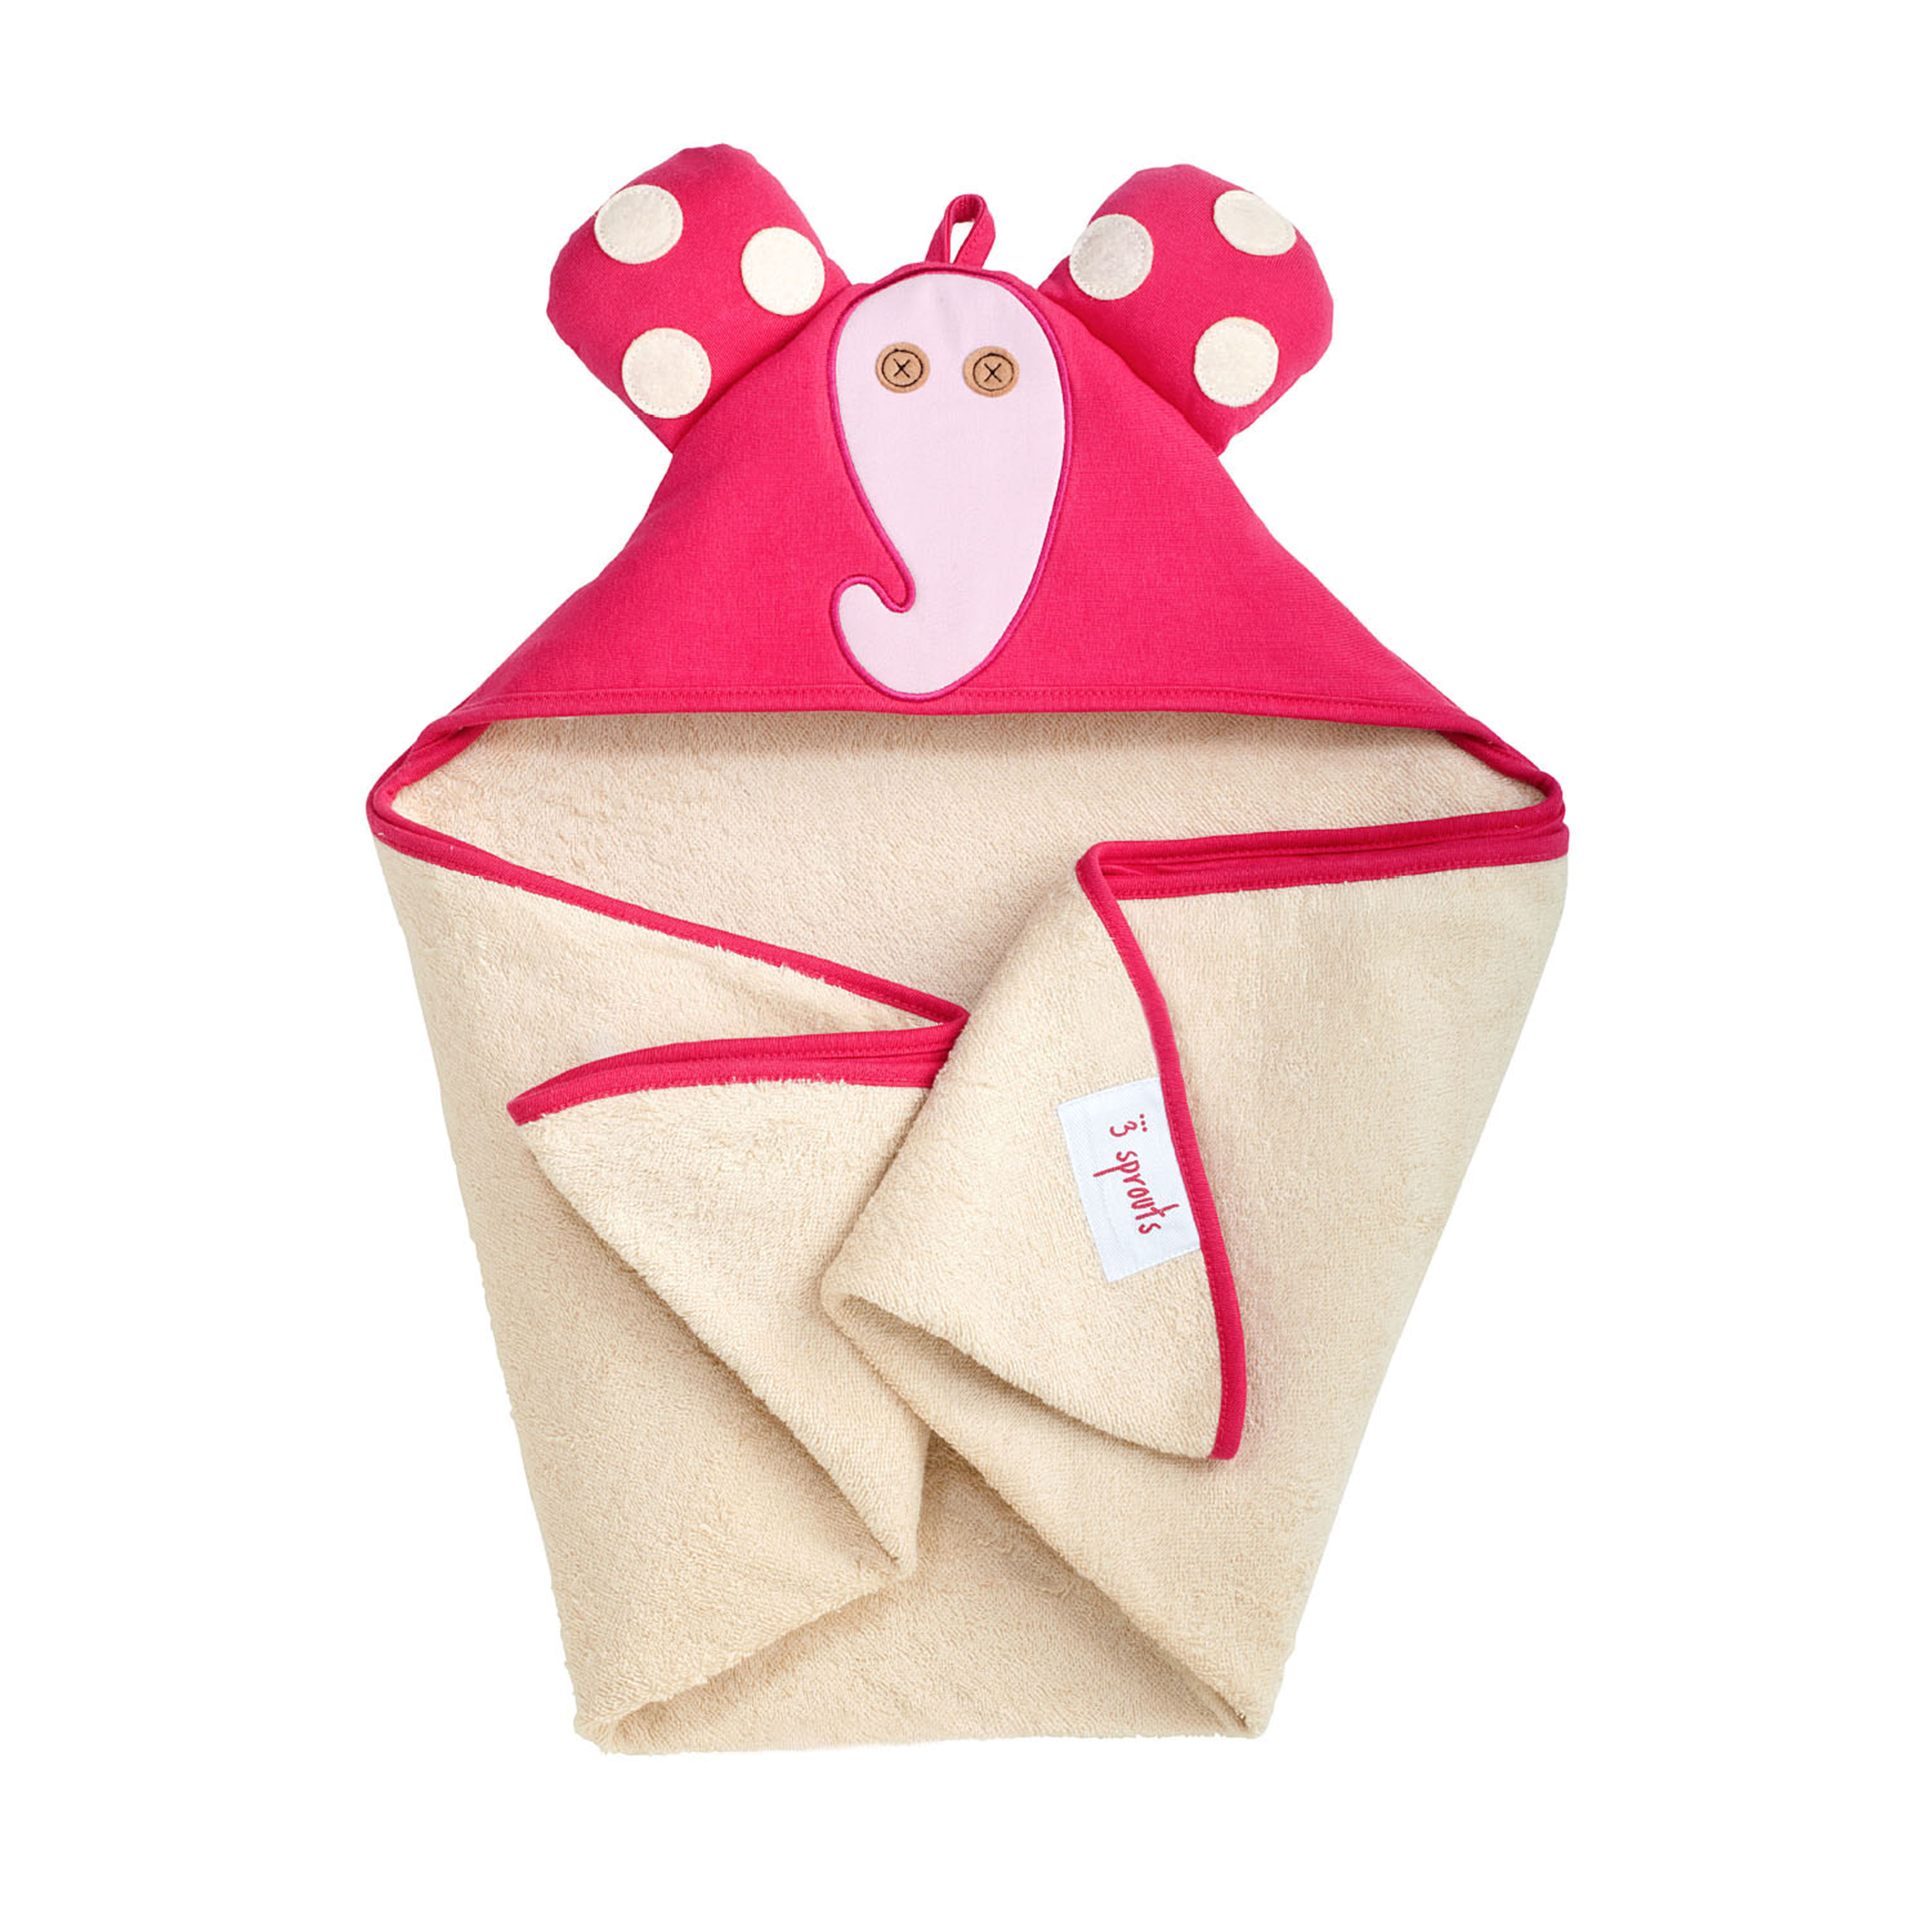 3 Sprouts - Hooded Towl - Pink Elephant